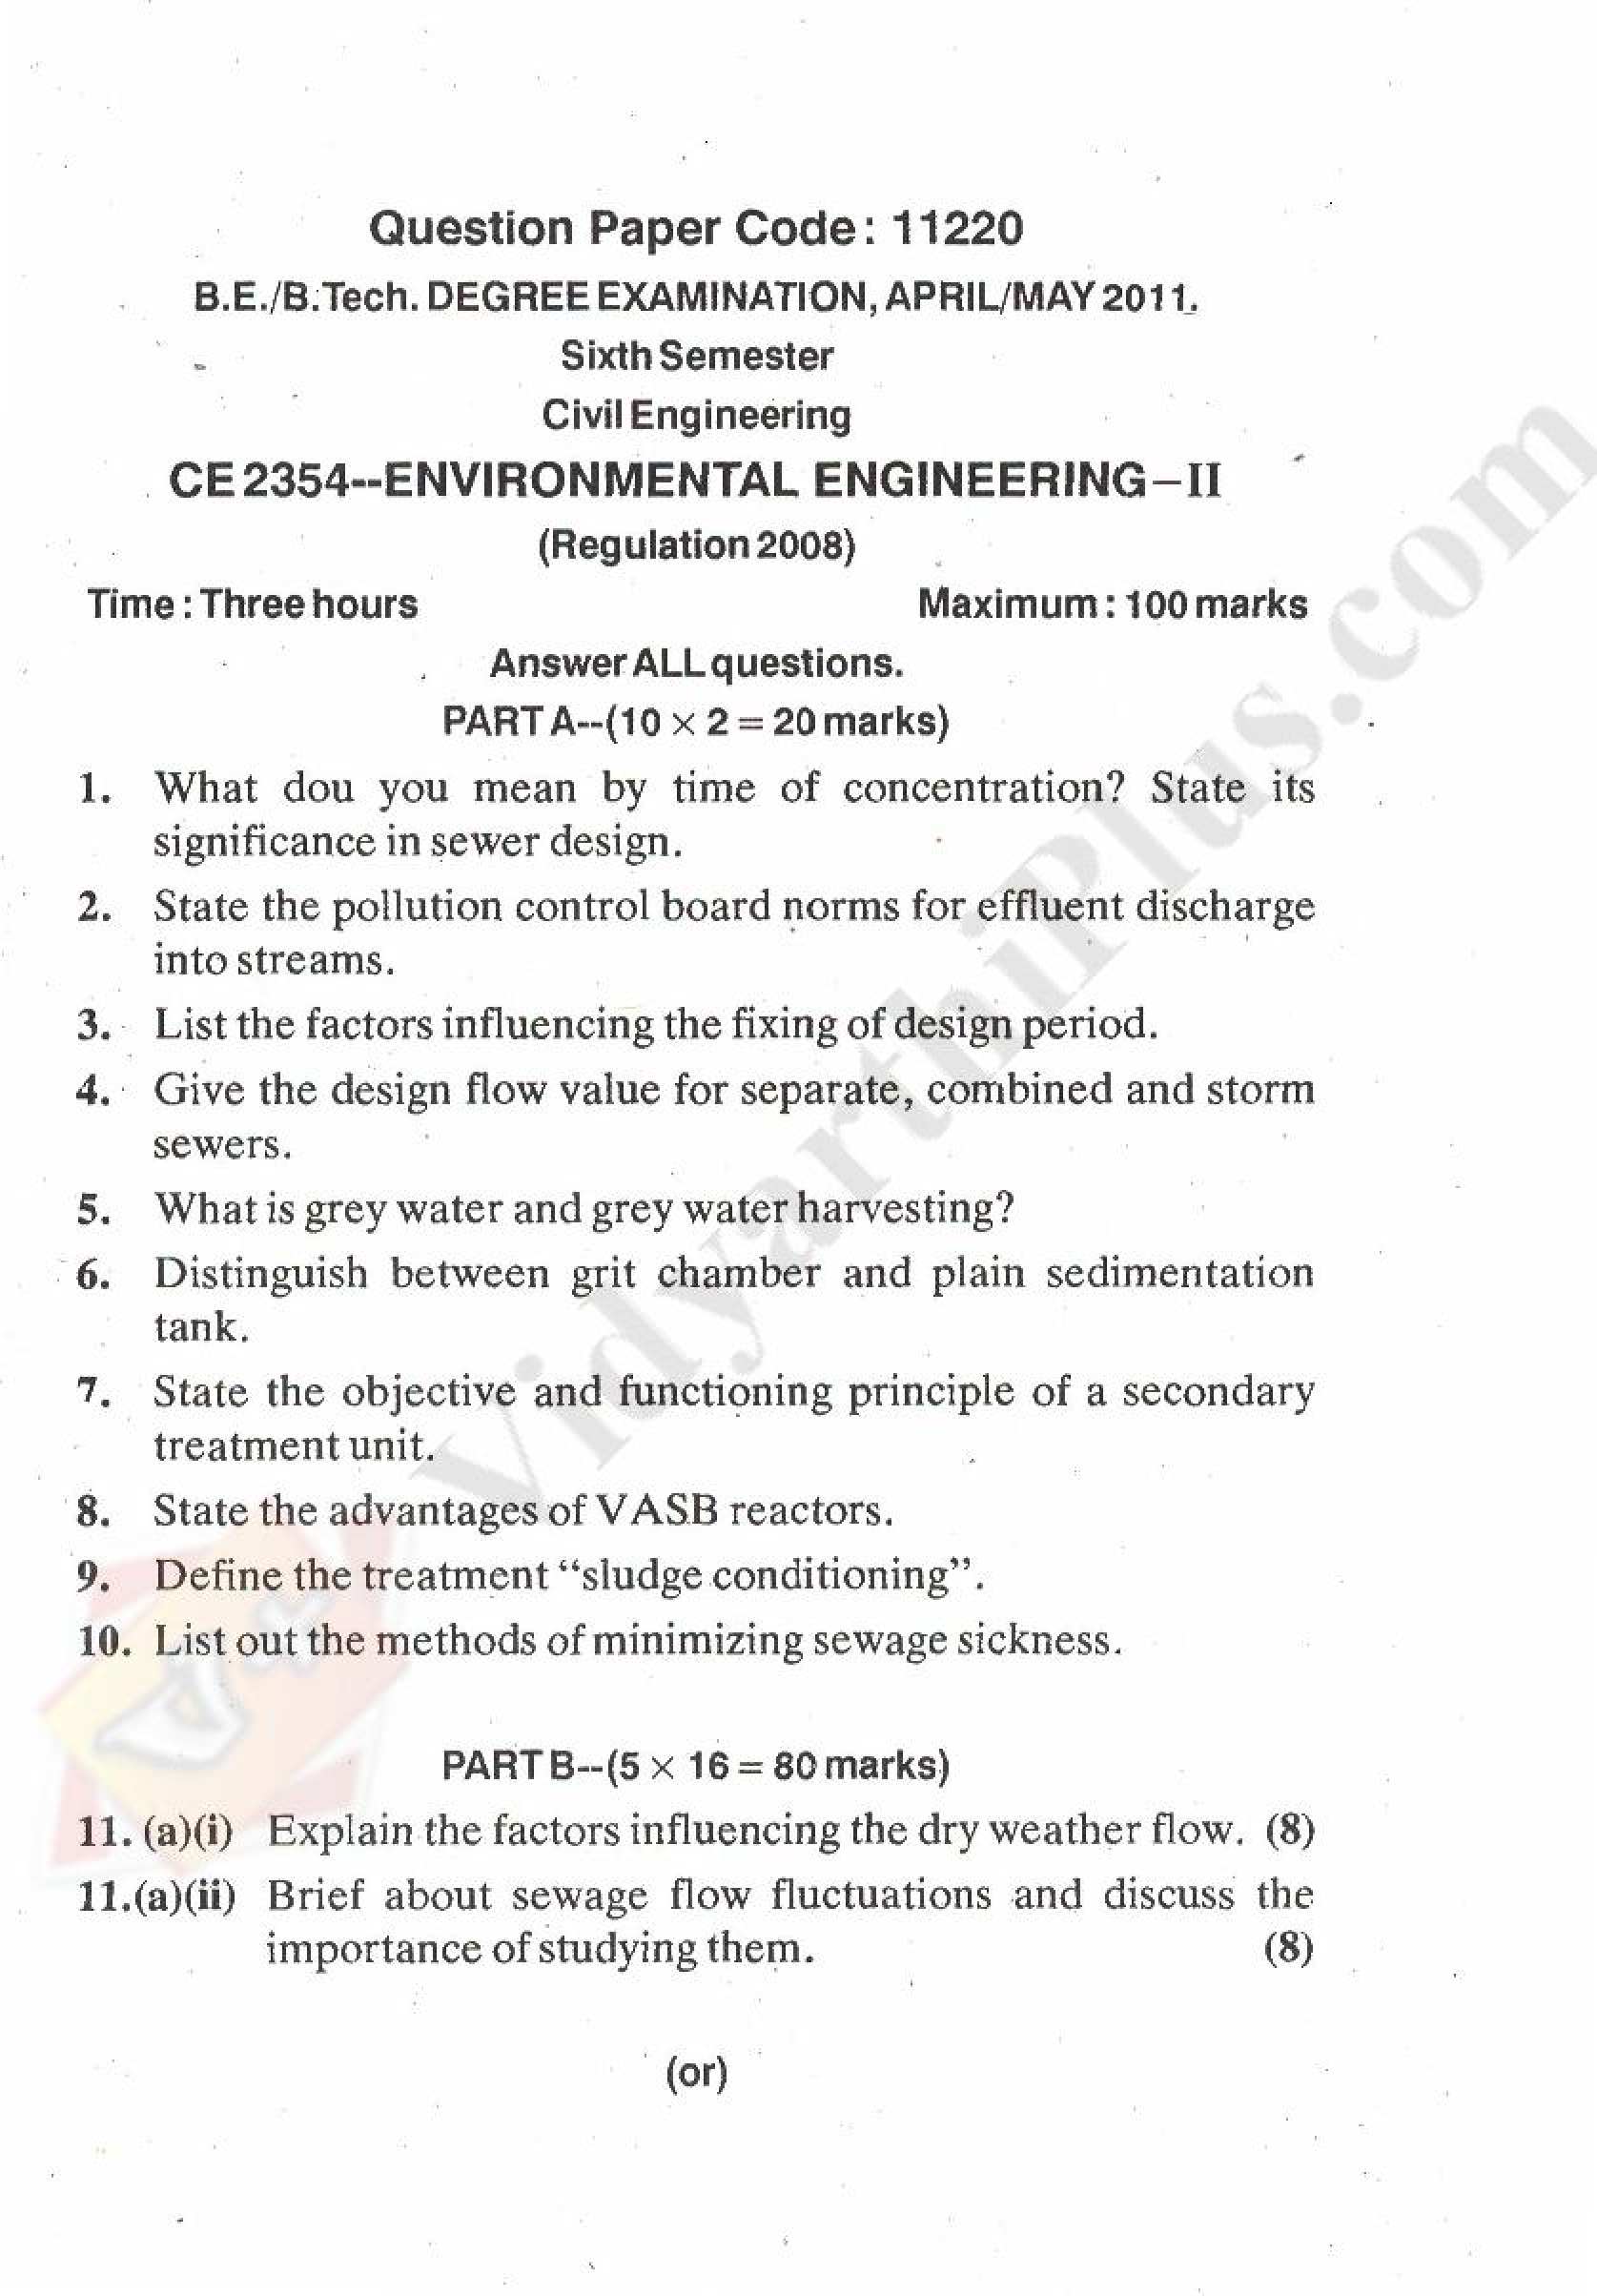 Environmental Engineering - II Solved Question Papers - 2015 Edition